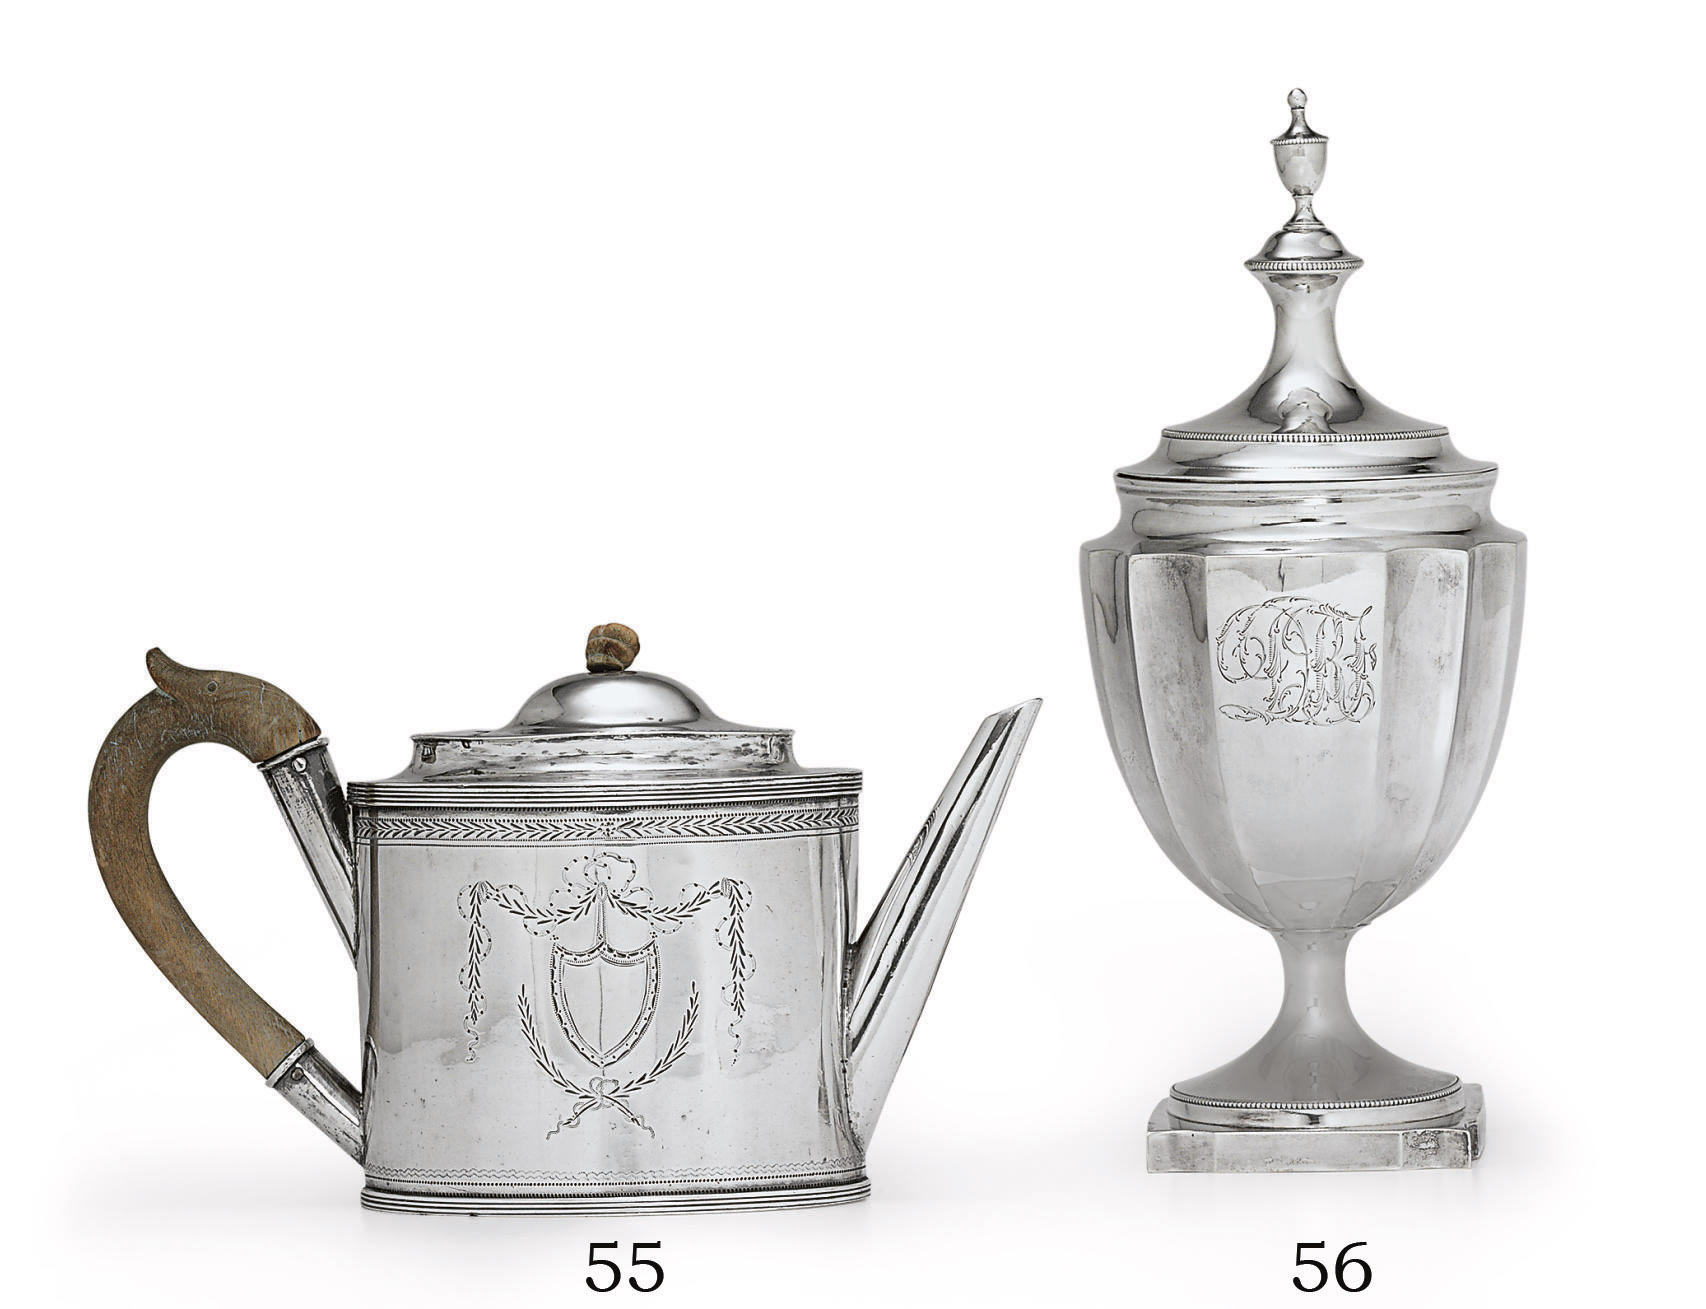 A SILVER TEAPOT OF SOUTHERN INTEREST